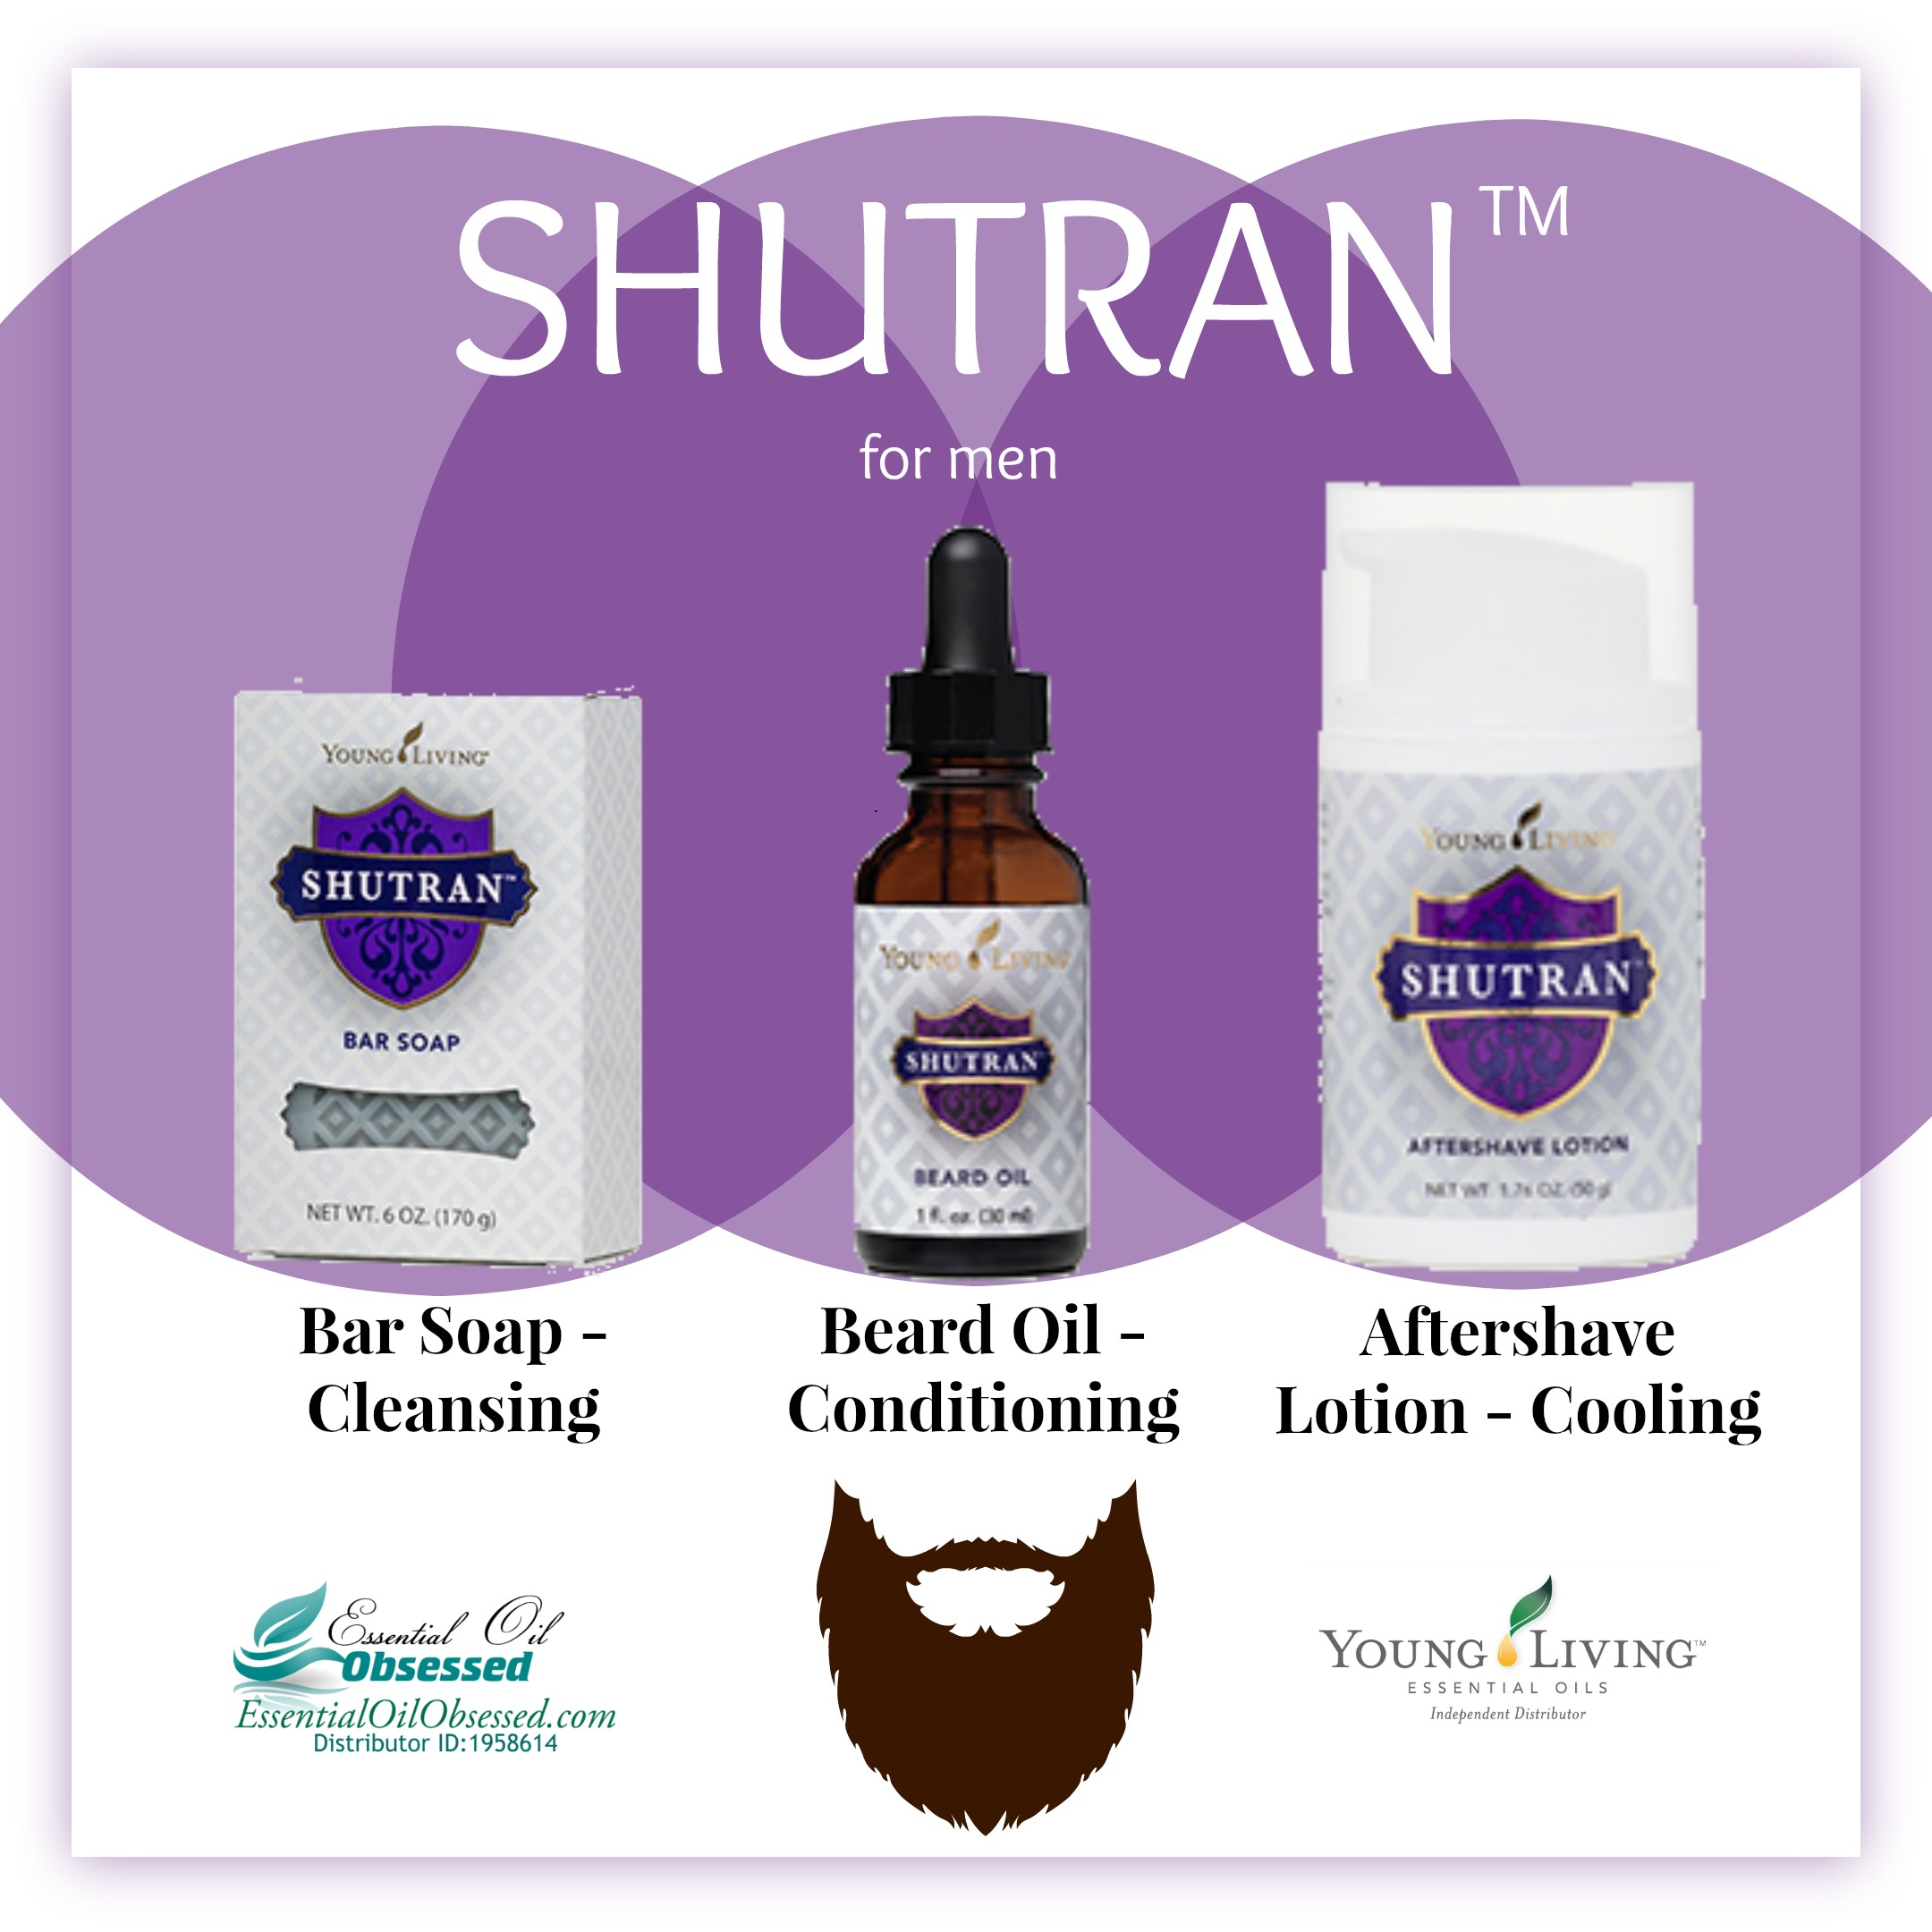 Shutran Products For Men Essential Oil Obsessed